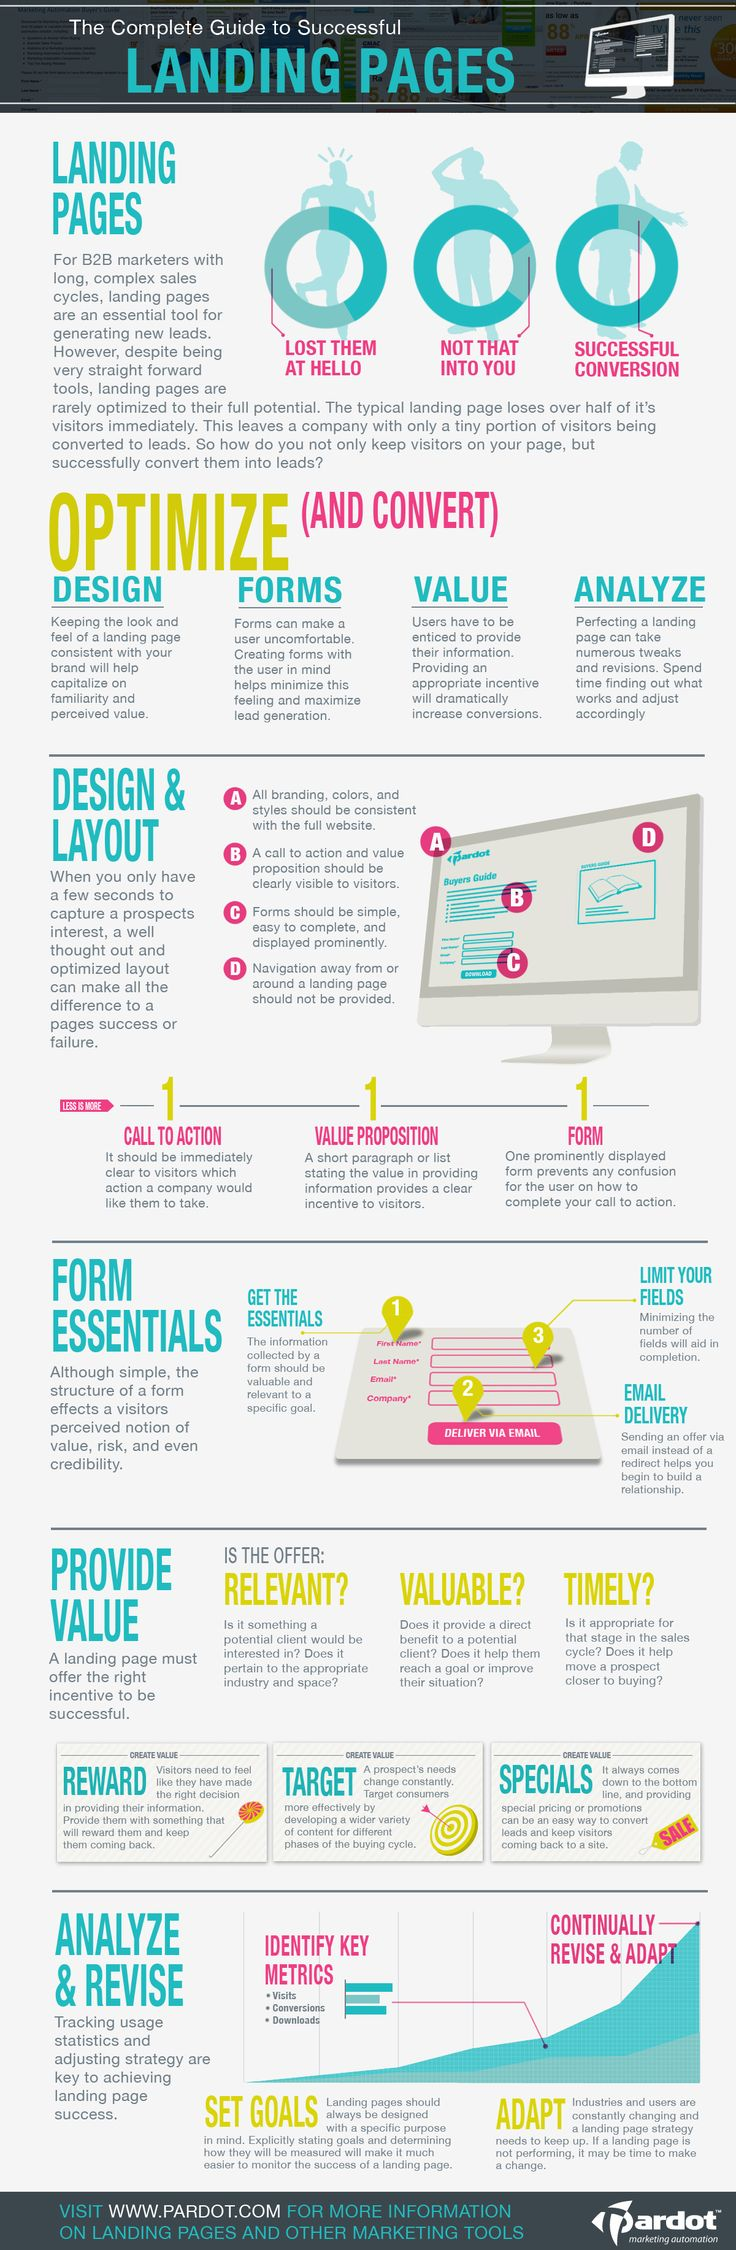 Ultimate Guide To Successful Website Landing Pages via Bit Rebels designed by Pardot.com